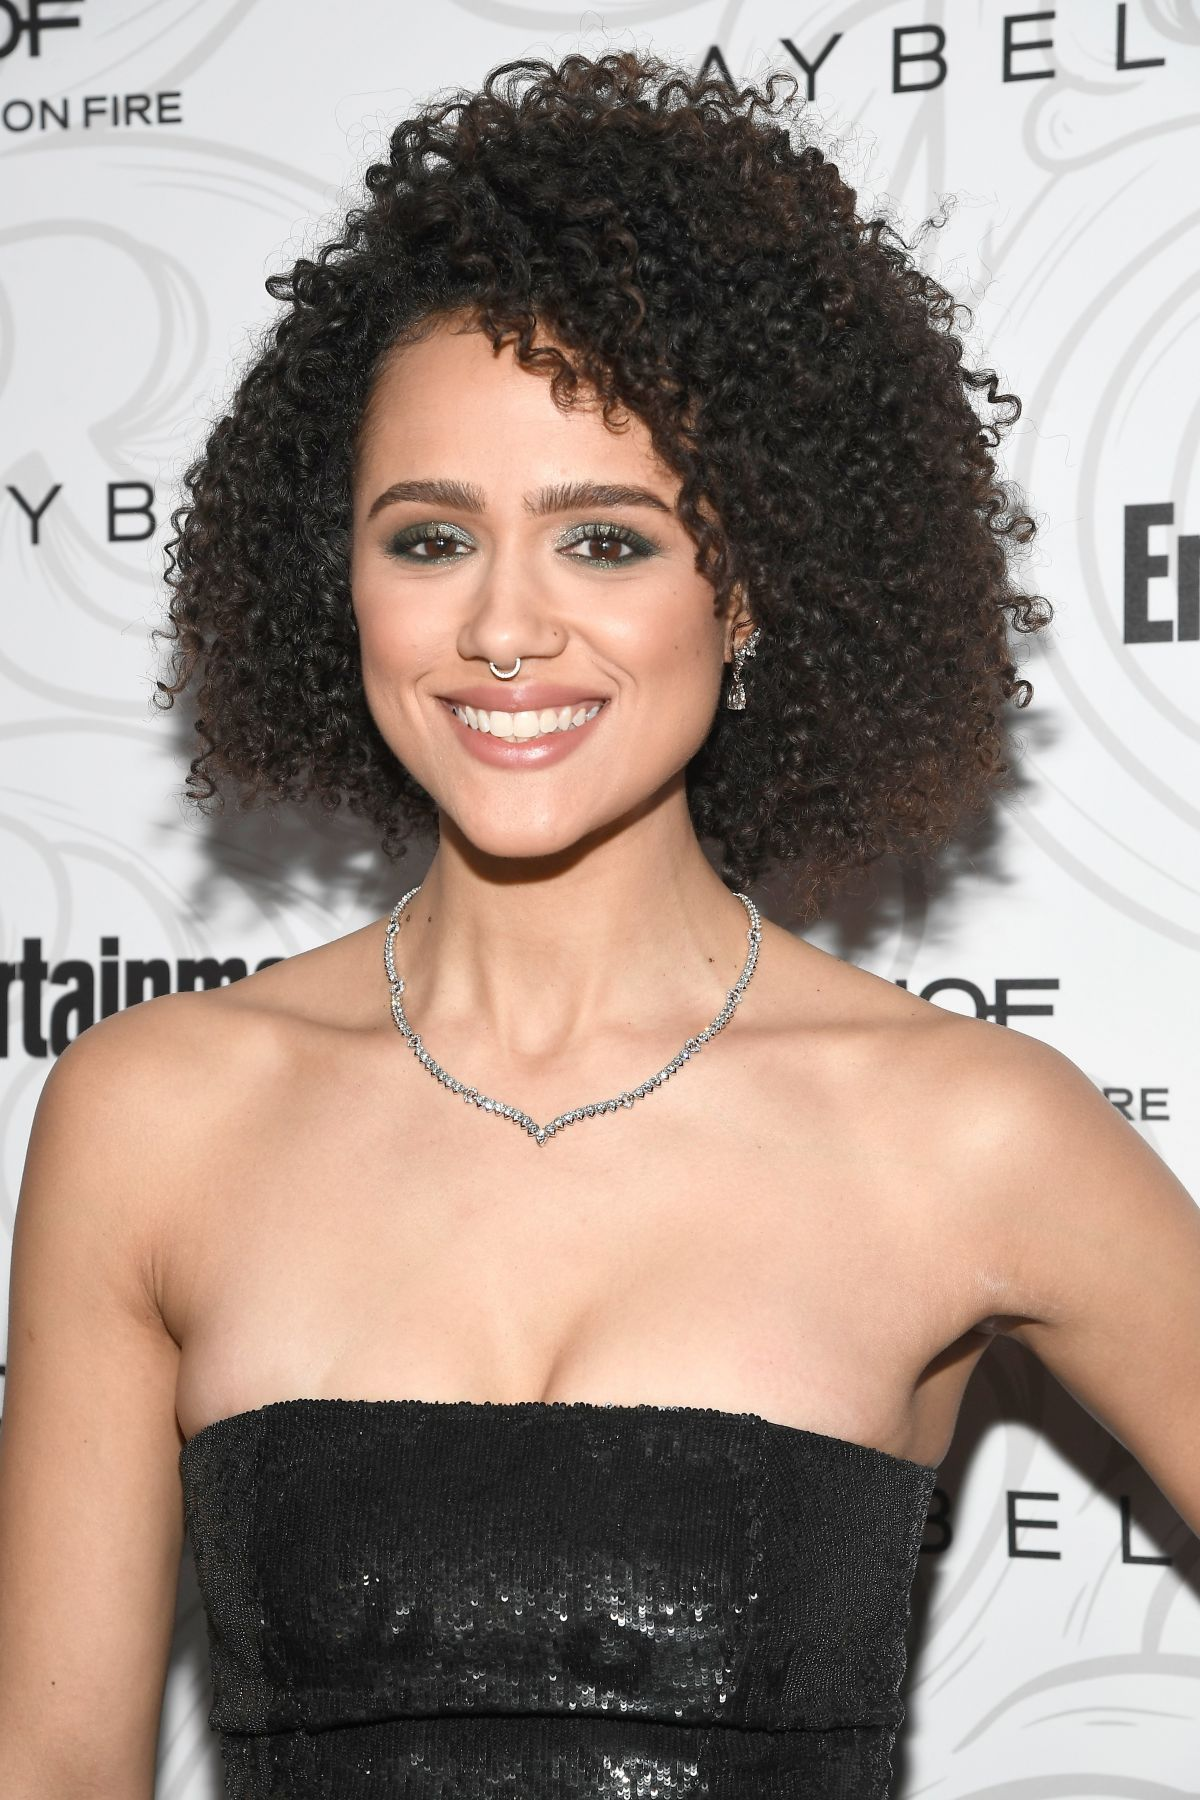 Image result for Nathalie Emmanuel, 28